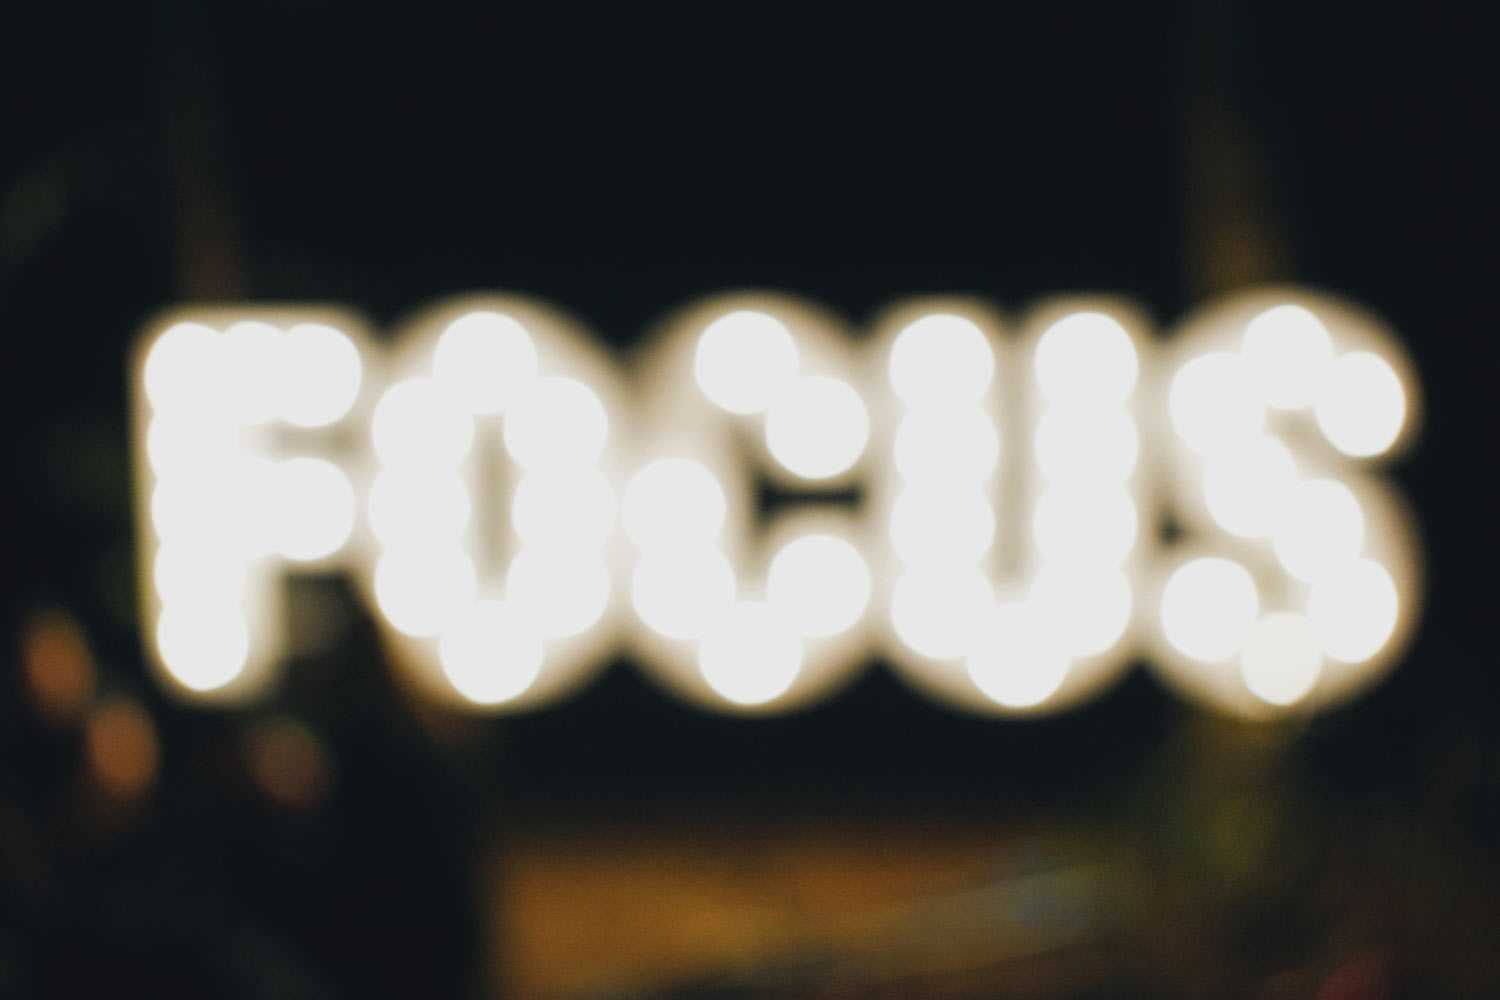 Attention and Focus